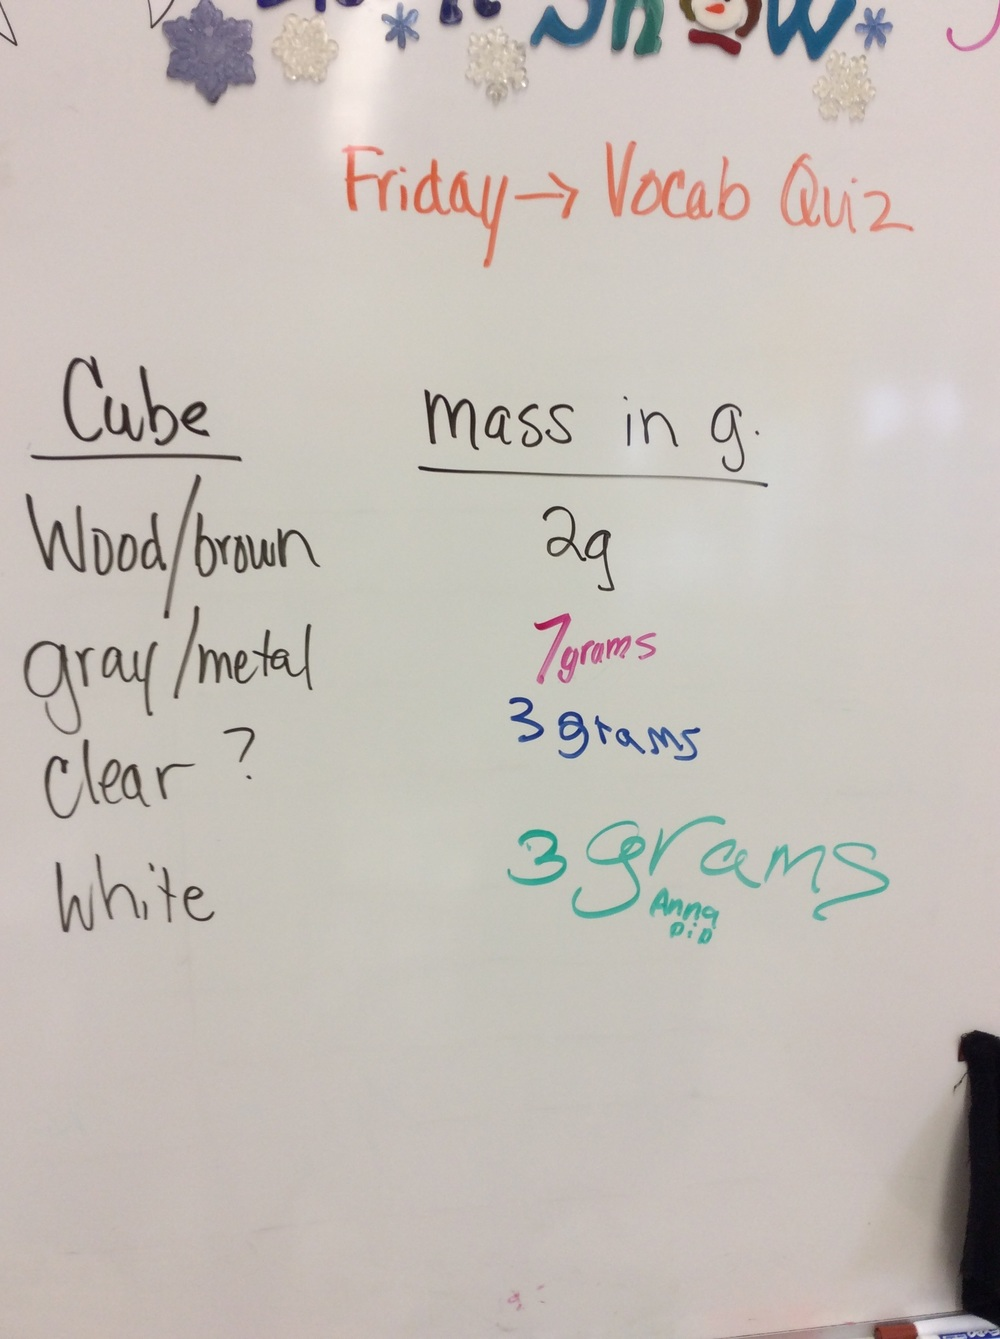 Checking the mass of our different cubes.